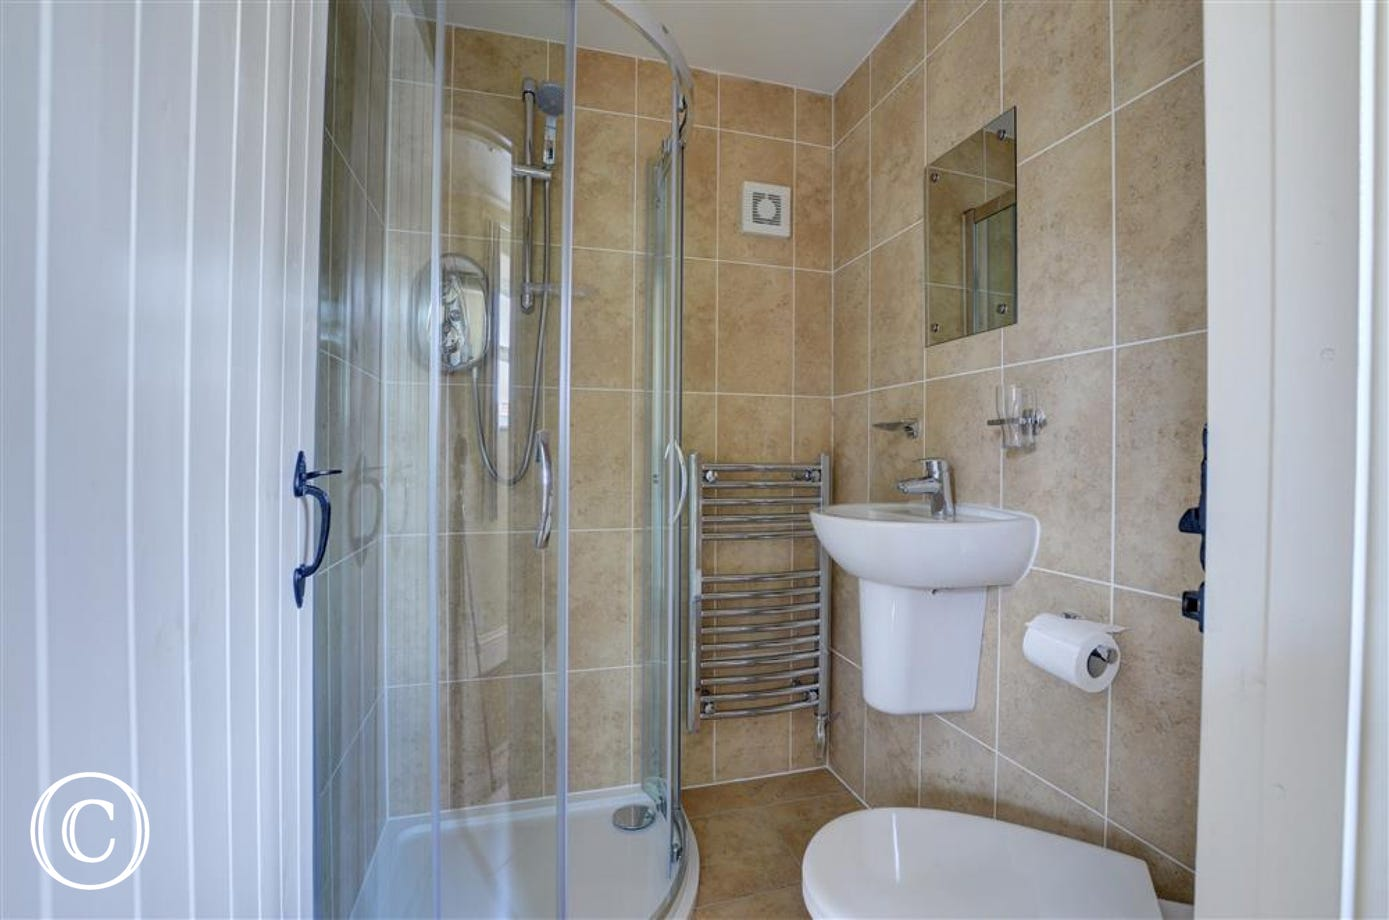 Bathroom has a walk in shower, toilet and washbasin